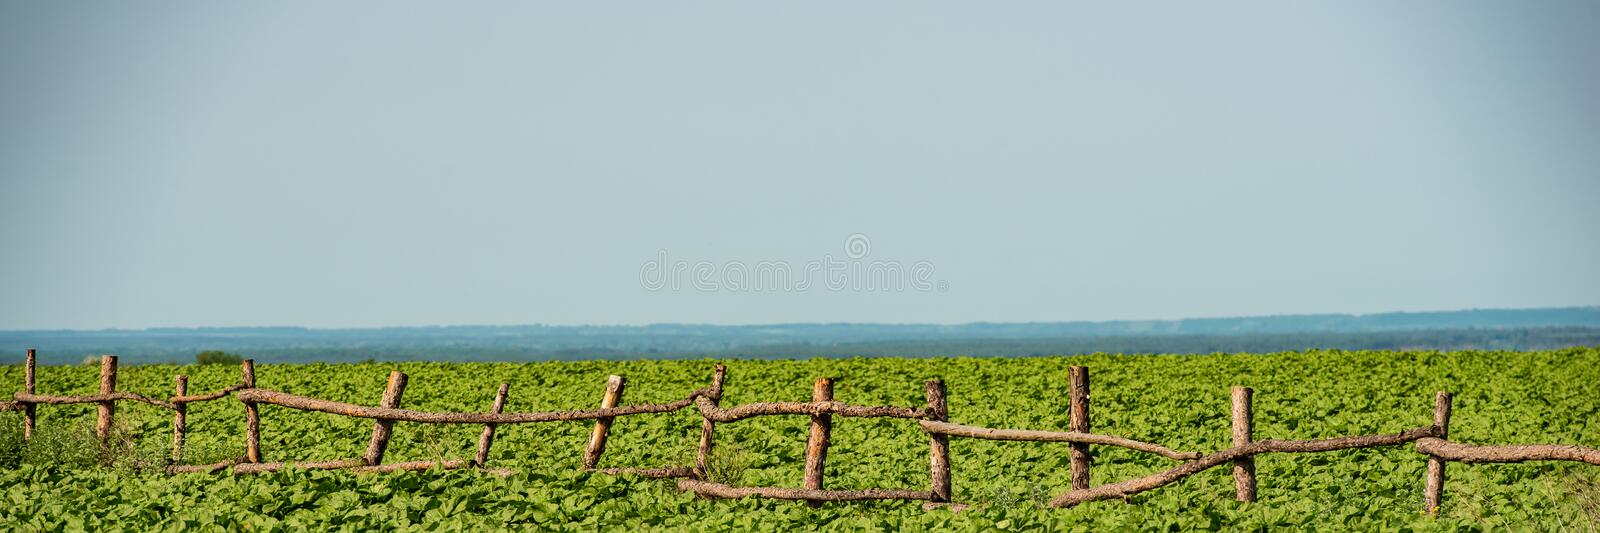 Wooden old fence in a field of young sunflowers on a sunny day royalty free stock photo